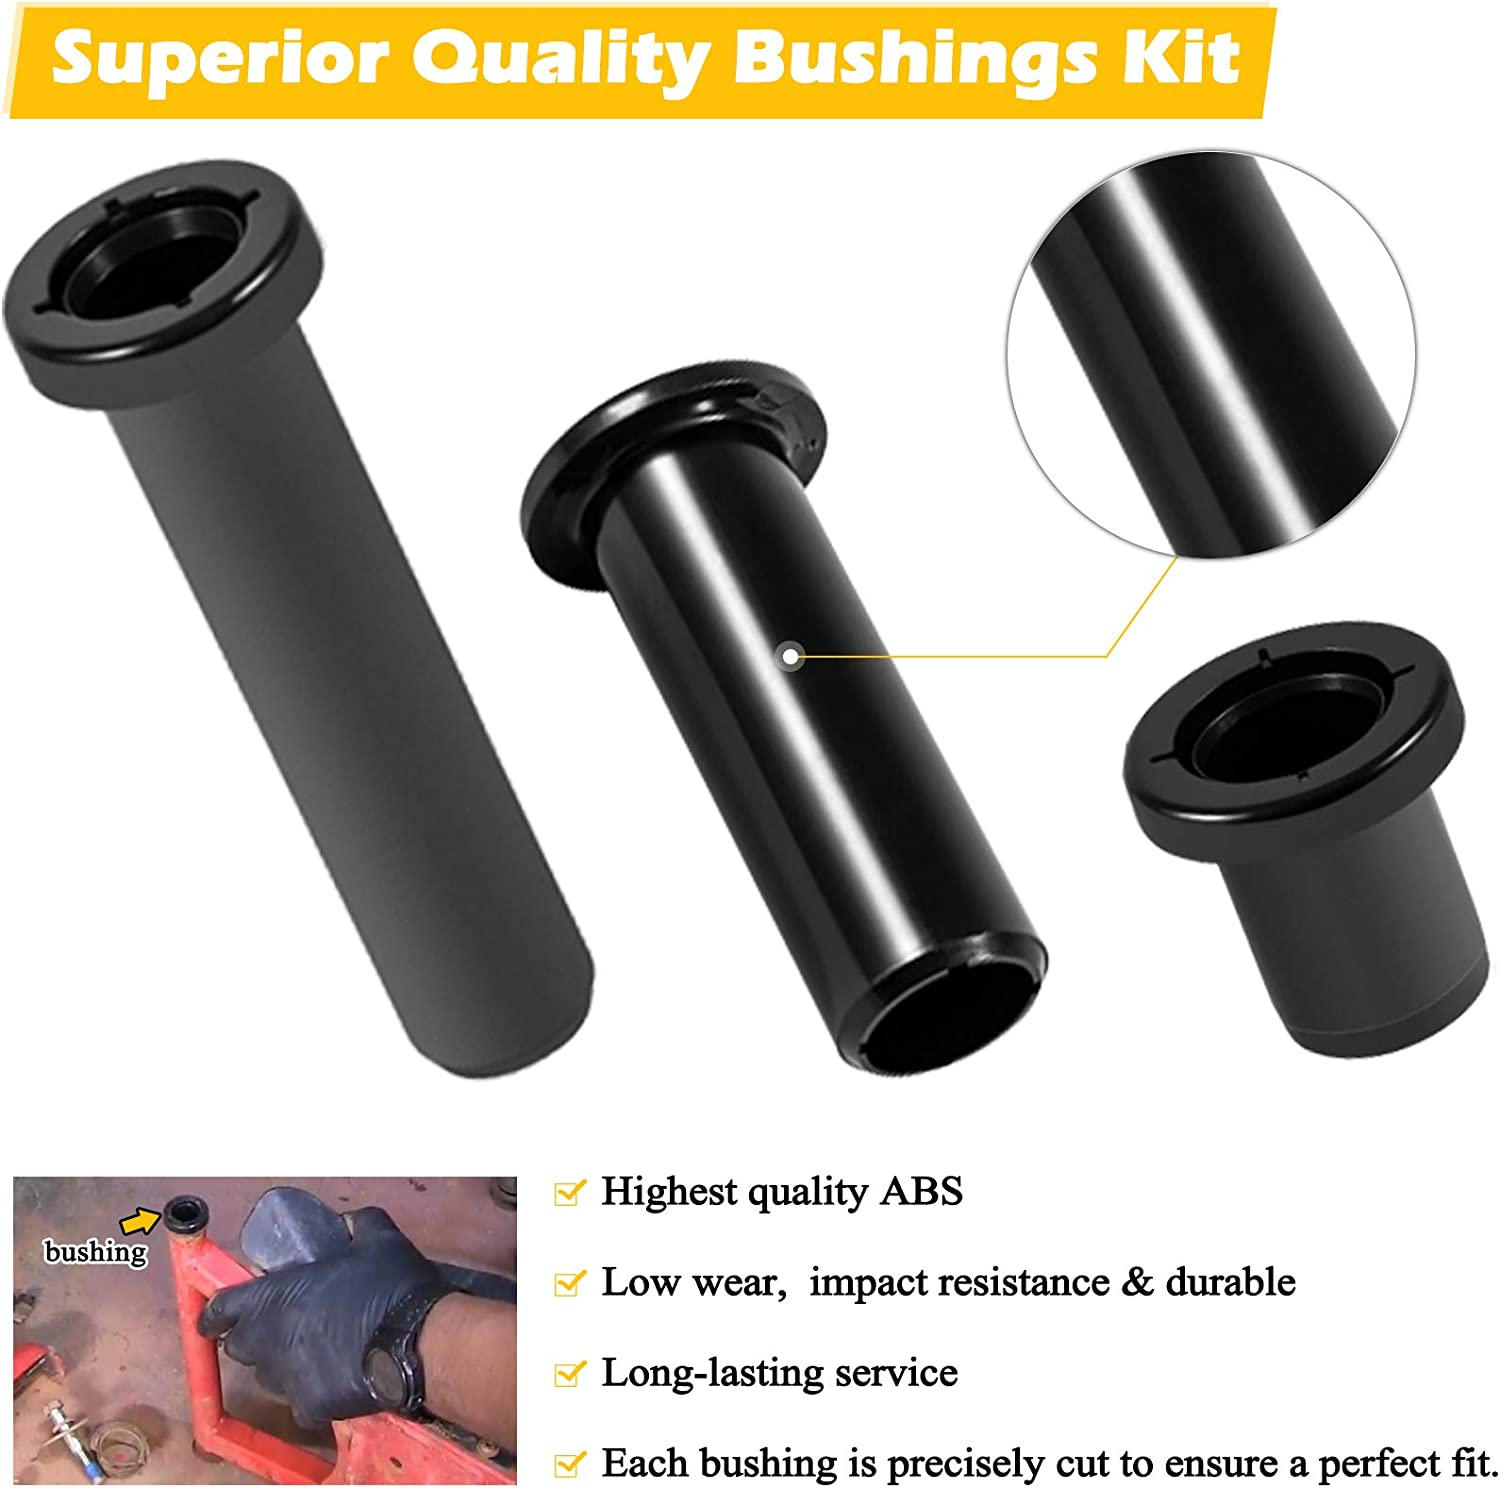 5439732 5436973 28 Pieces Complete Front /& Rear Control A-Arm Bushings Kit Fits for 2008-2014 Polaris RZR 800 // RZR 4 /& S 800 Replaces for 5439874